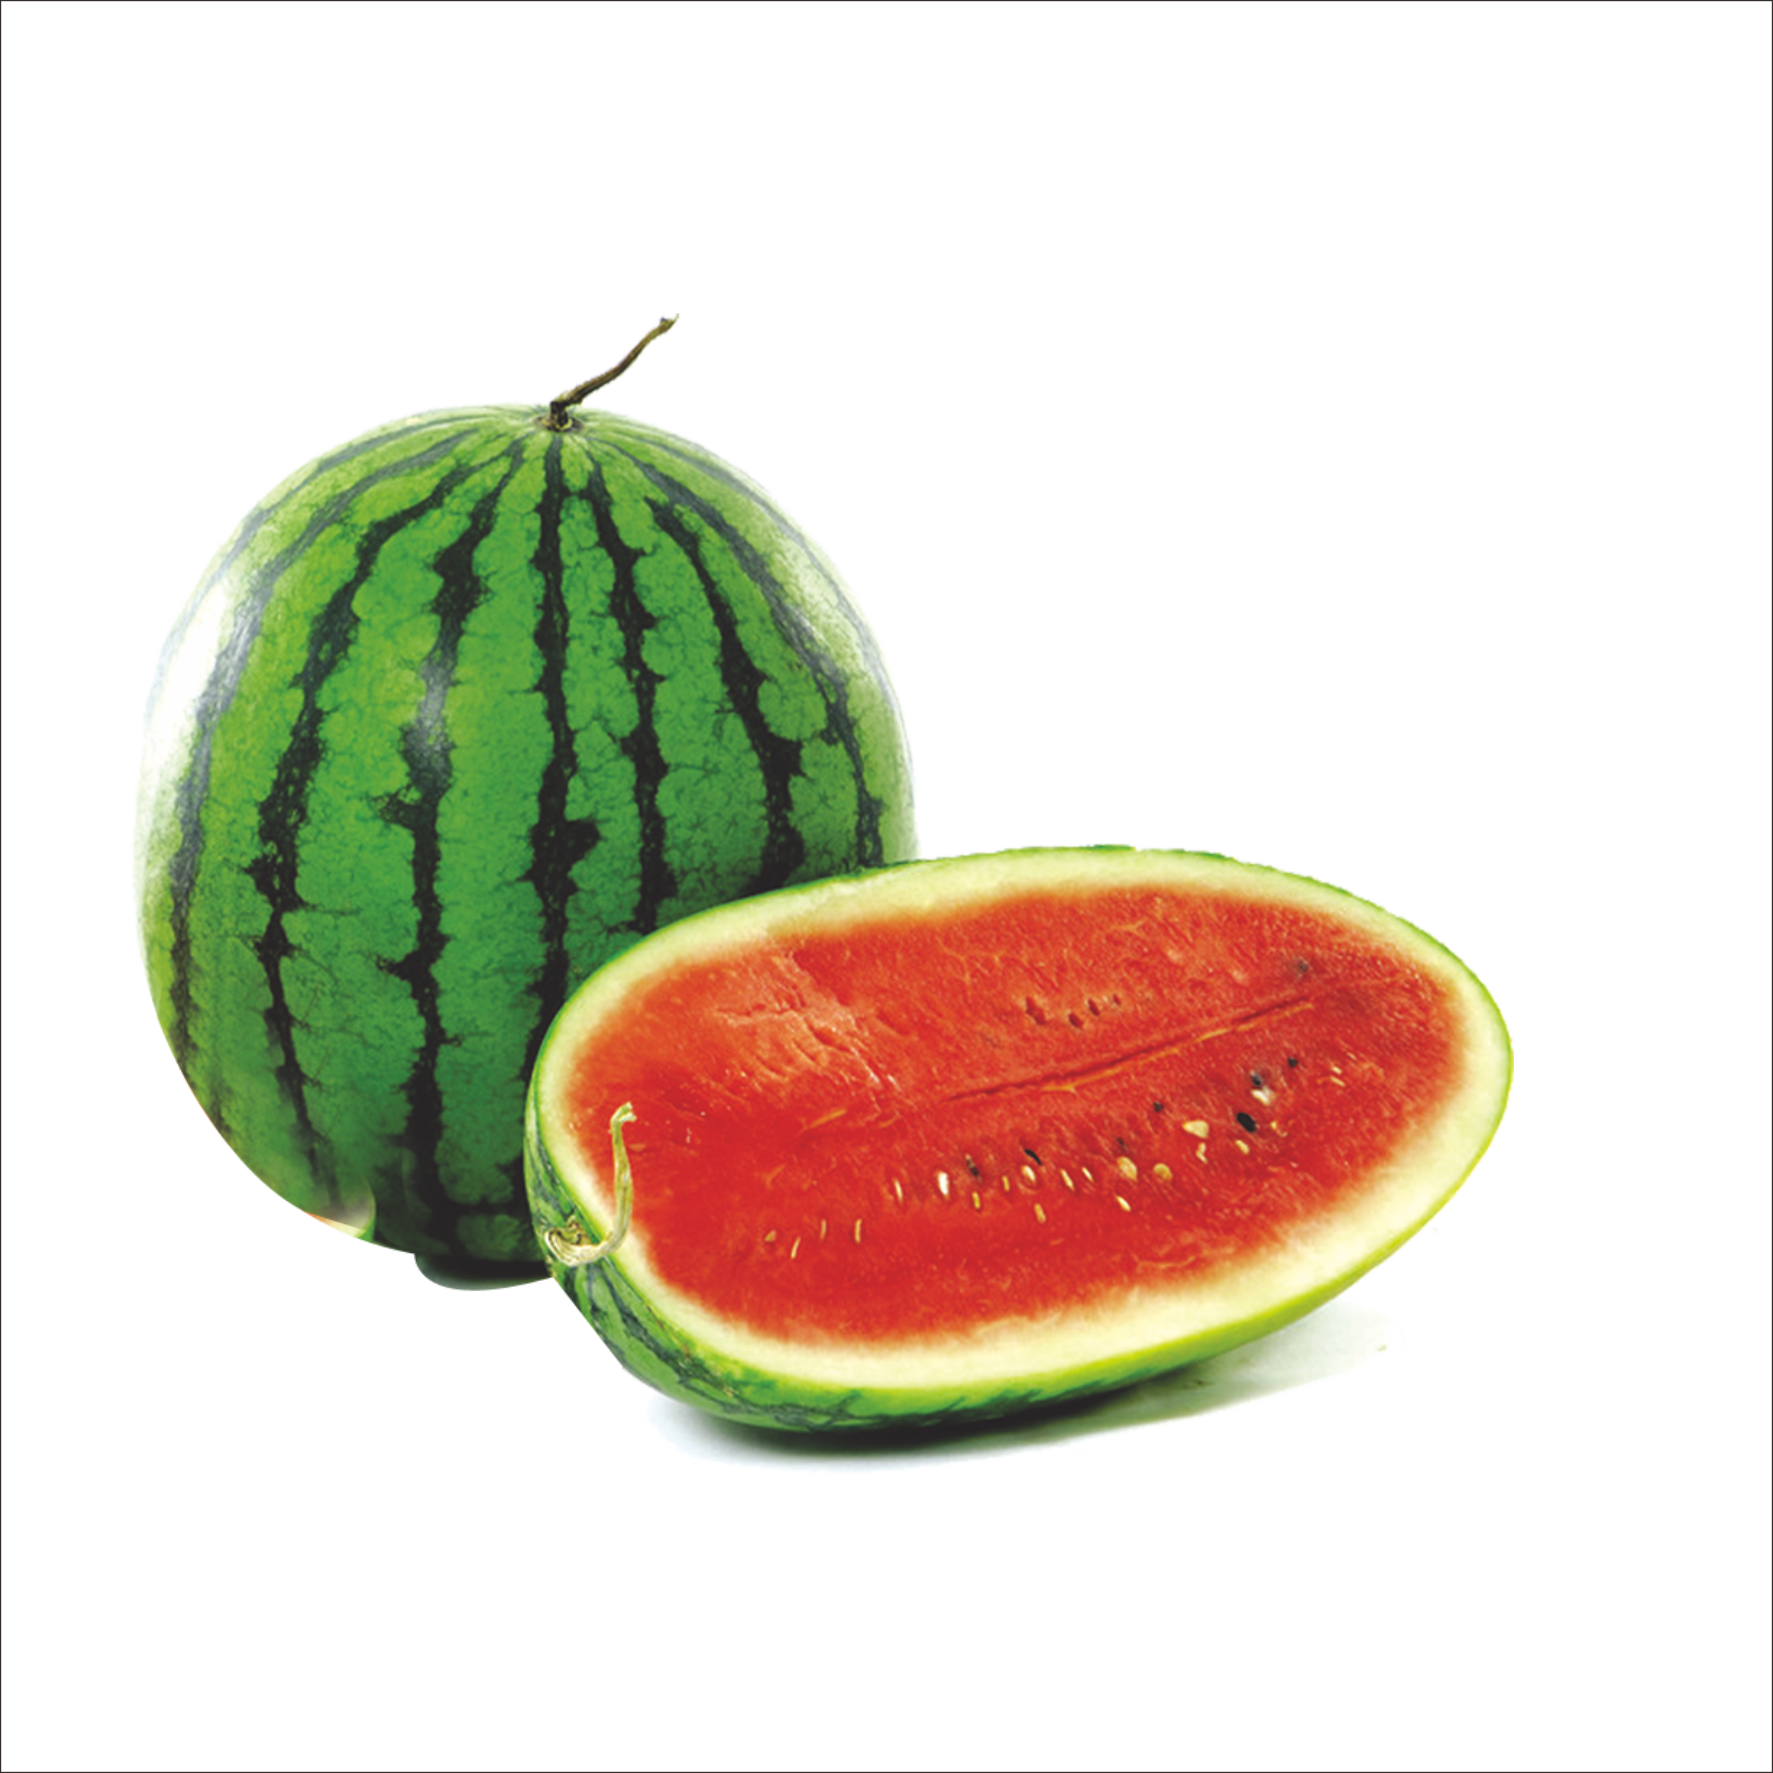 Watermelon png images. Transparent free download pngmart